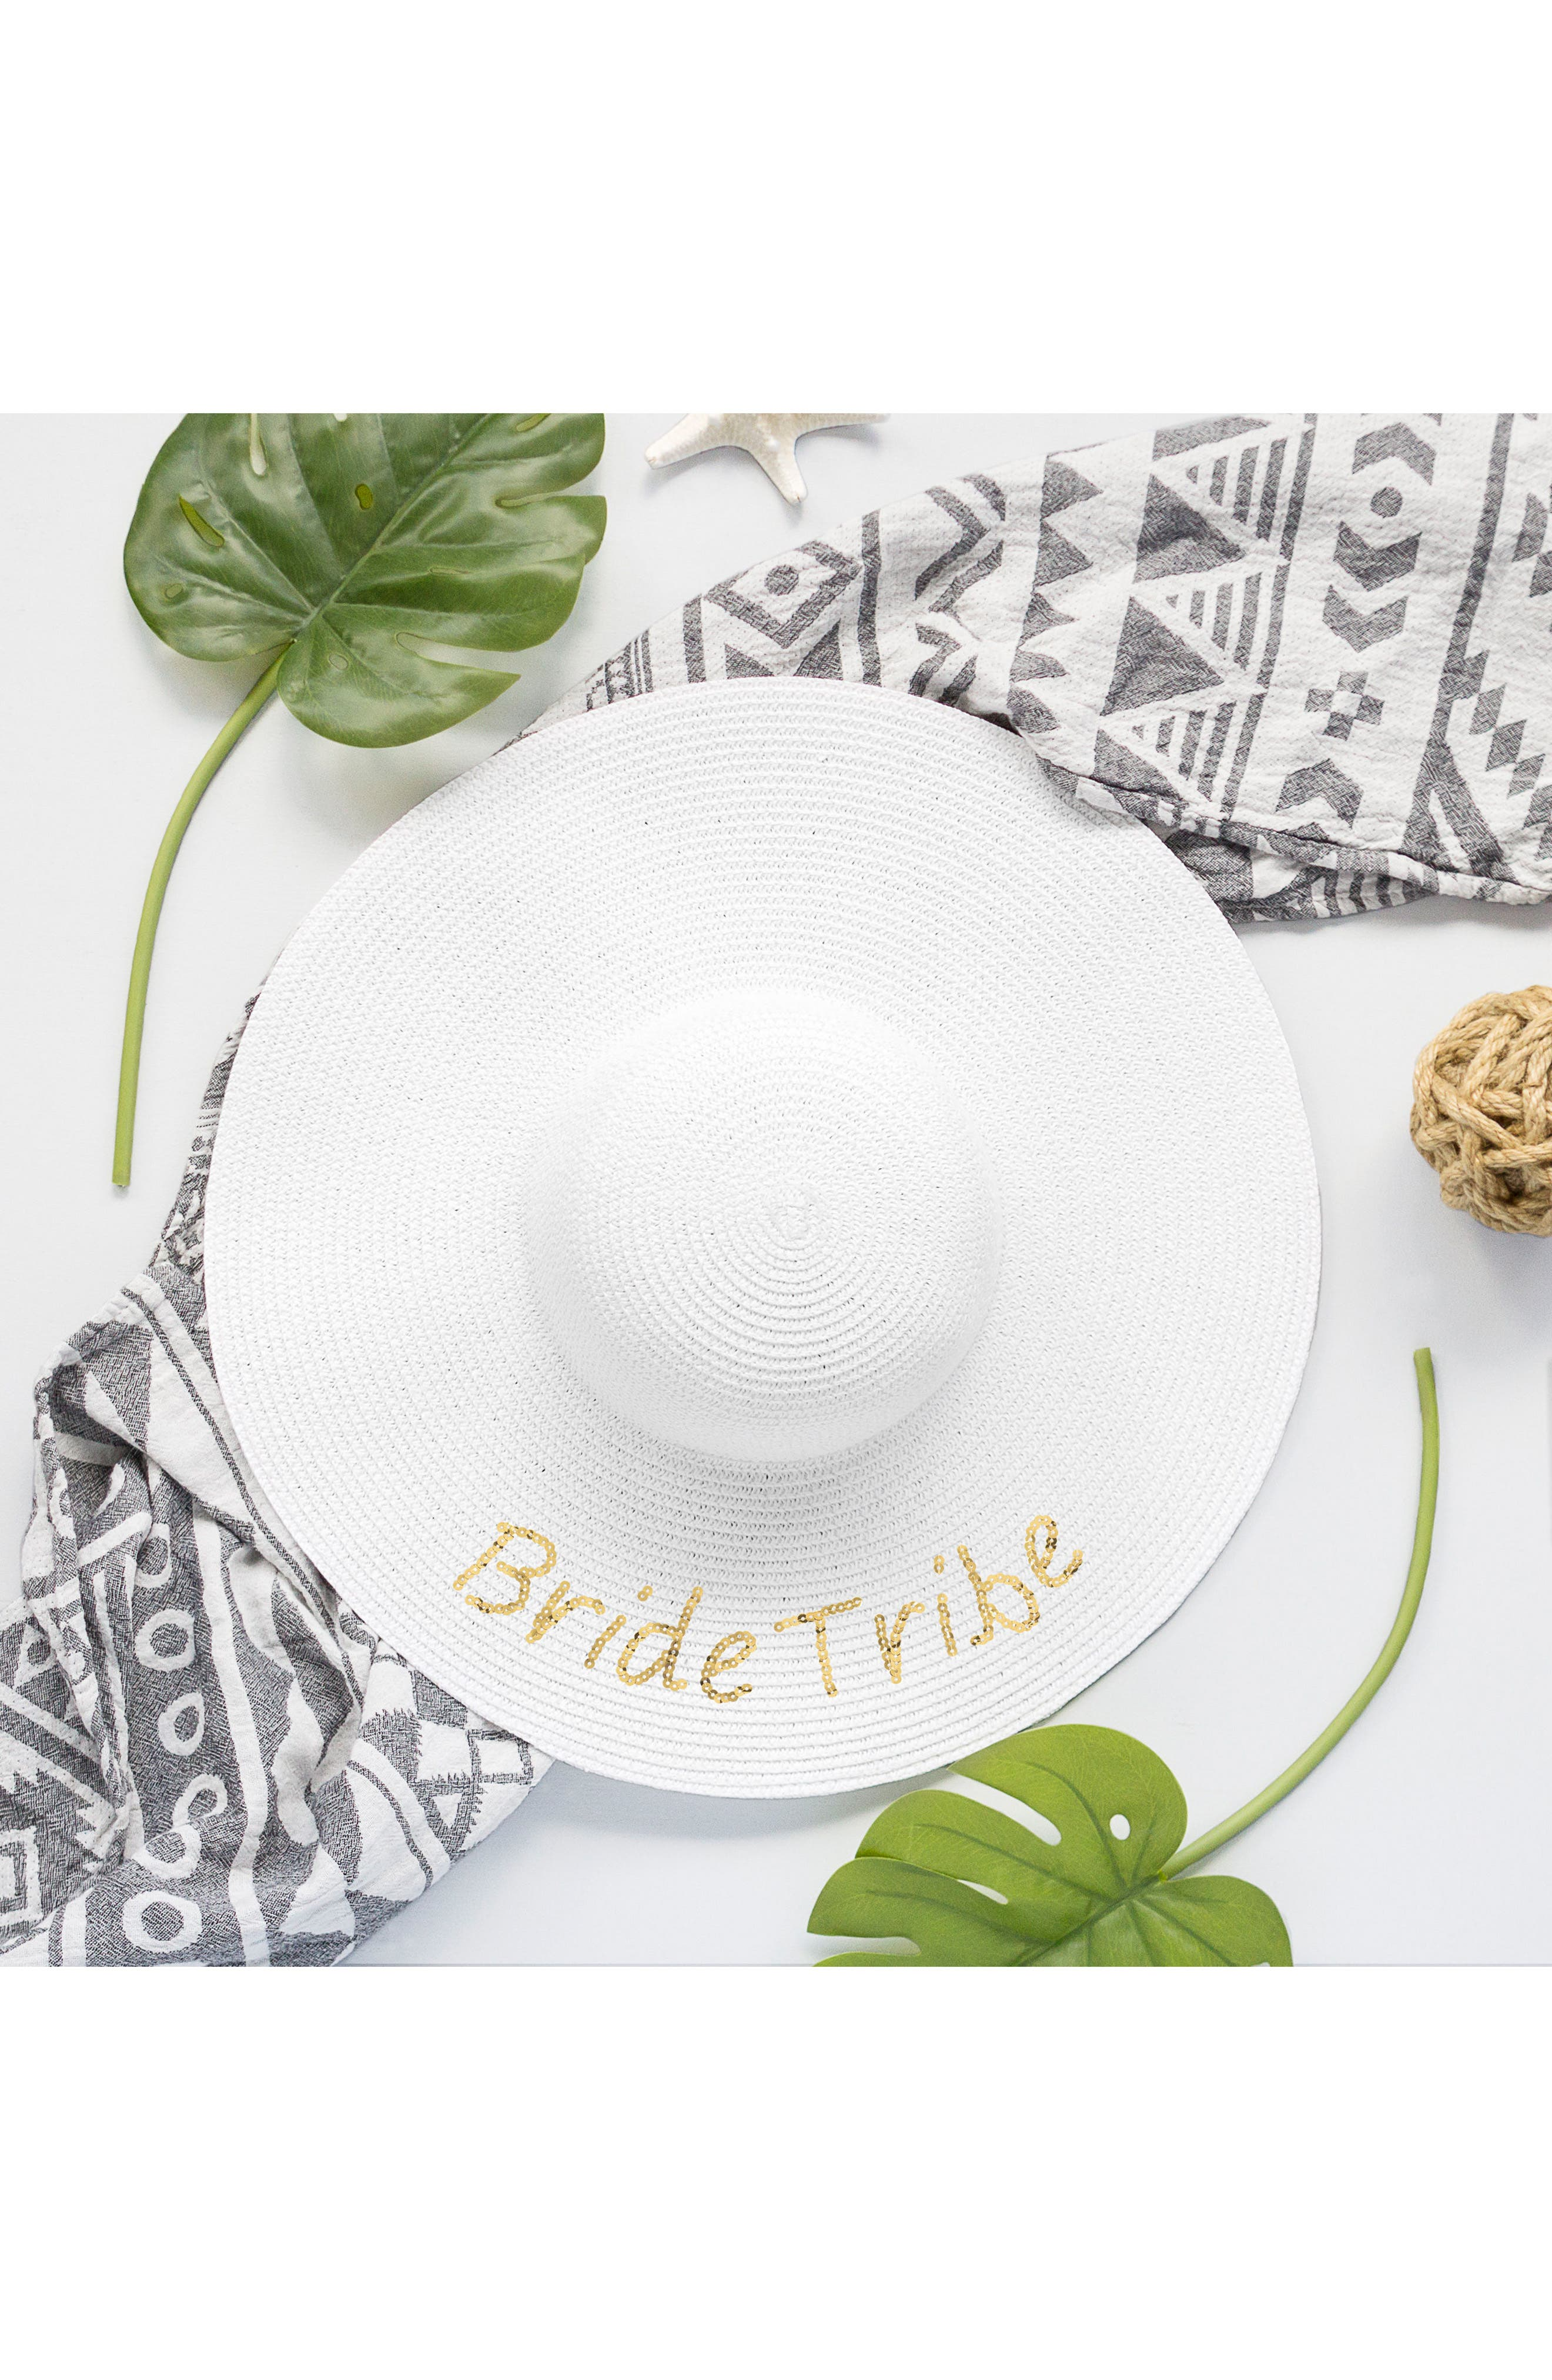 Sequin Bride Tribe Straw Hat,                             Alternate thumbnail 2, color,